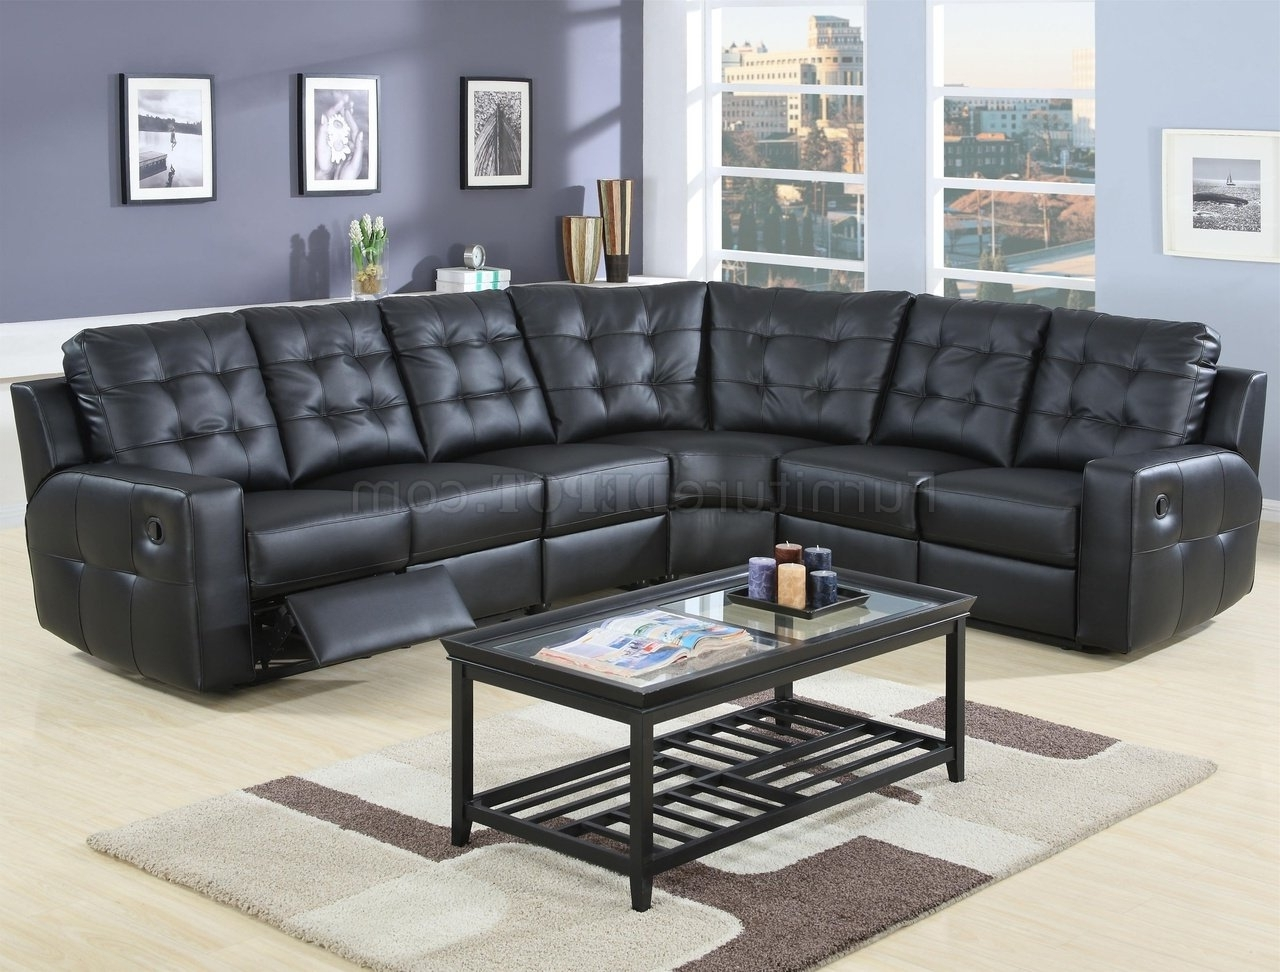 Trendy Leather Recliner Sectional Sofas Pertaining To Modern Leather Double Reclining Sectional Sofa 600315 Black (View 17 of 20)